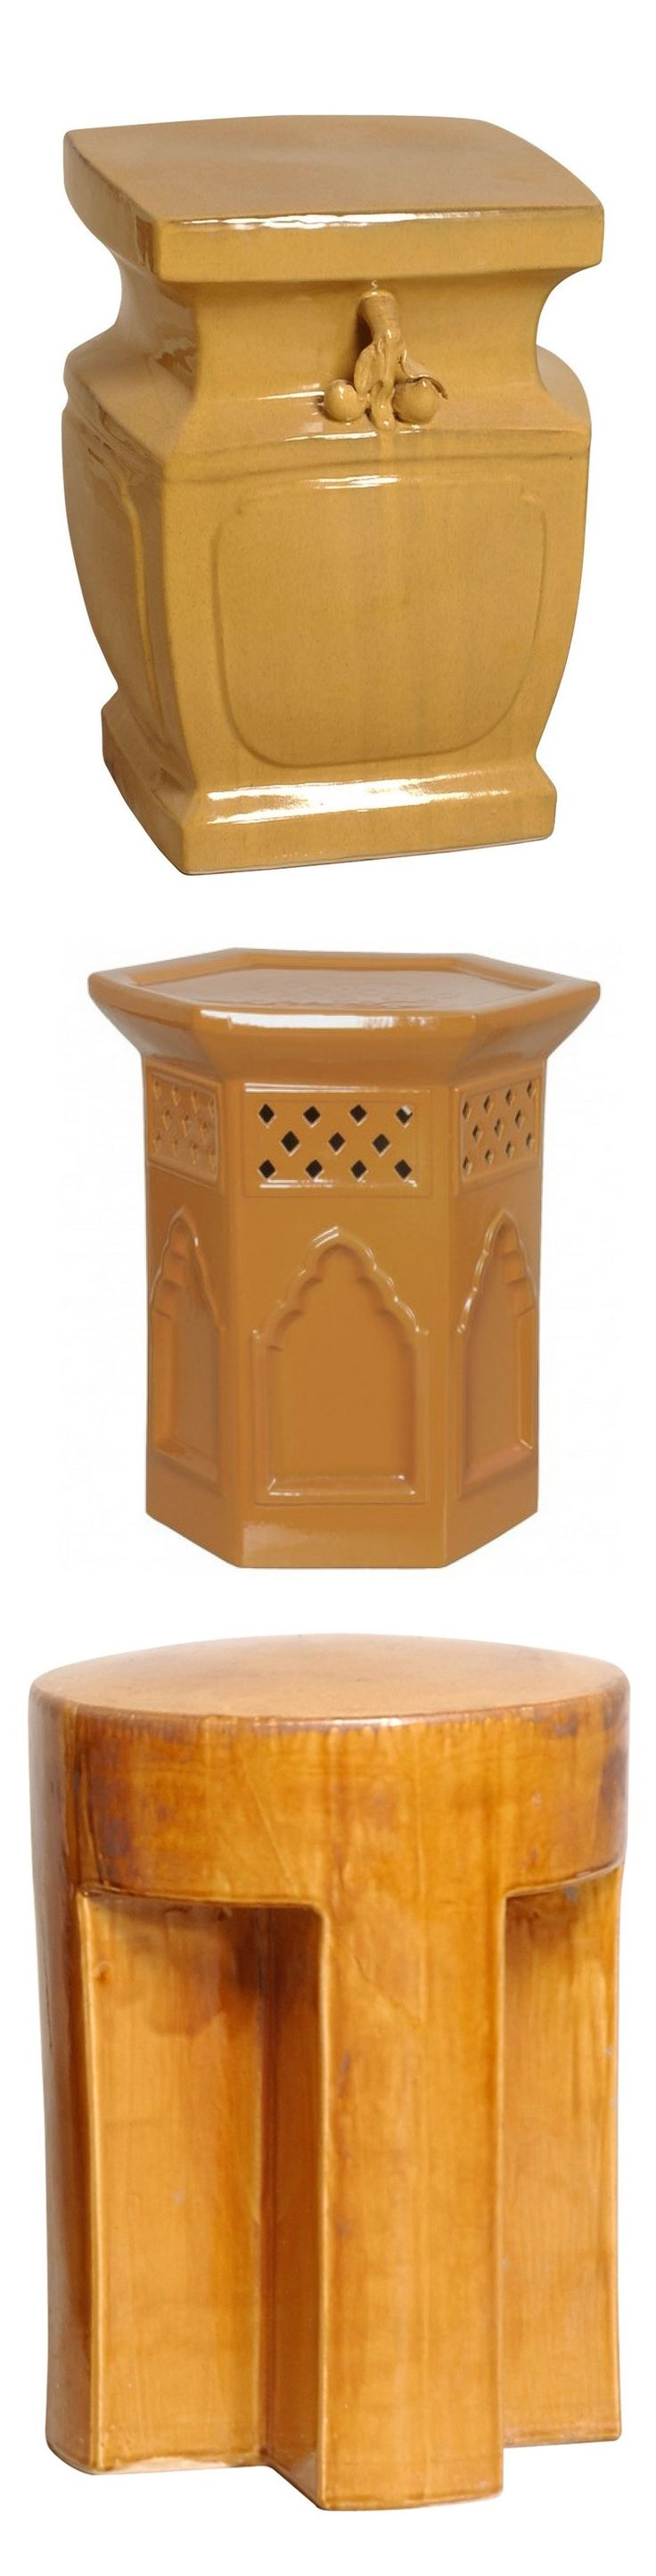 Brown Garden Stool   Brown Ceramic Stools   Brown Porcelain Stool   Brown Ceramic Stool   Brown Porcelain Stools   Brown Pottery Stool   Brown Pottery Stools   Brown Garden Stools   Garden Stool   Garden Stools   Garden Stools   Ceramic Stool   Chinese Garden Stools   Ceramic Stools   Chinese Garden Stool   InStyle Decor Hollywood Over 1,000 Designs View @ www.instyle-decor.com/brown-garden-stools.html Worldwide Shipping Clients Inc: Four Seasons Hotels, Hyatt Hotels, Hilton Hotels & Many…